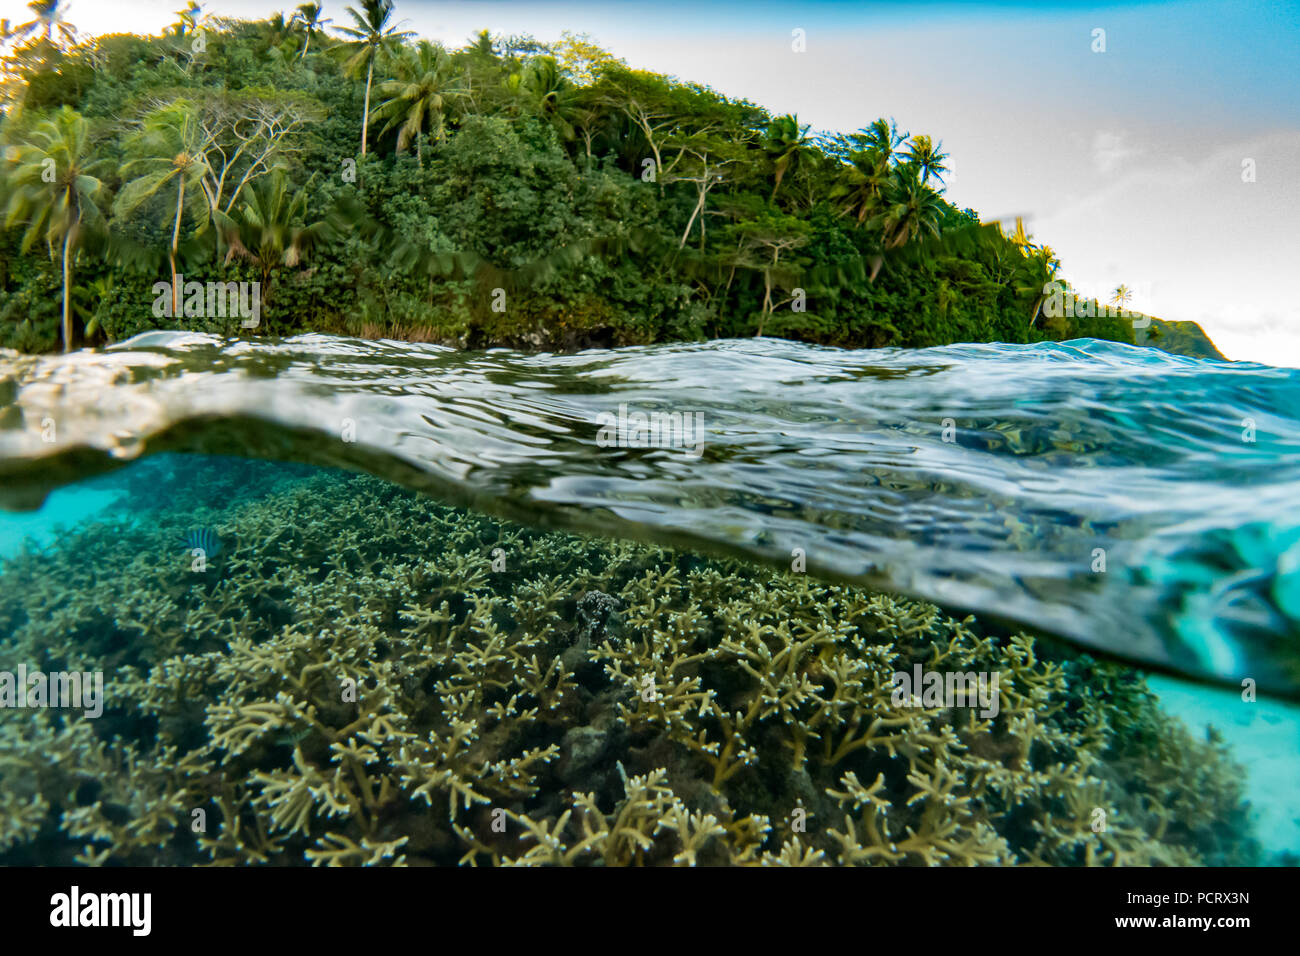 Snorkeling inside the lagoon at Huahine, French Polynesia - Stock Image